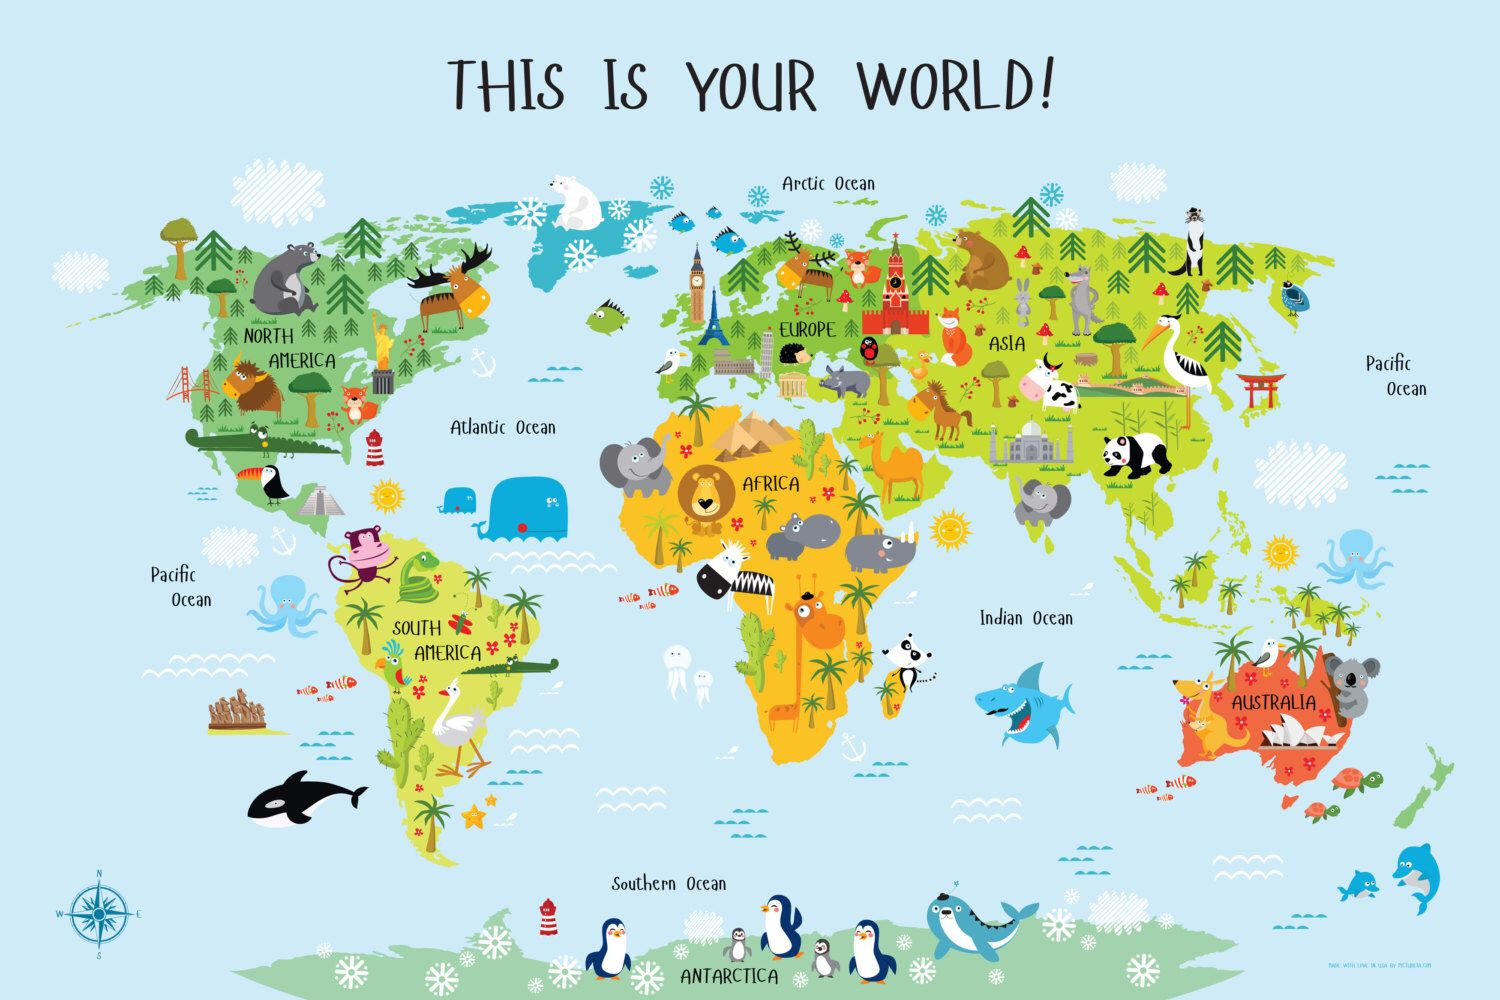 World map for kids instant download nursery decor high resolution world map for kids instant download nursery decor high resolution size up to 36x54 unique baby gift playroom art printable gumiabroncs Image collections